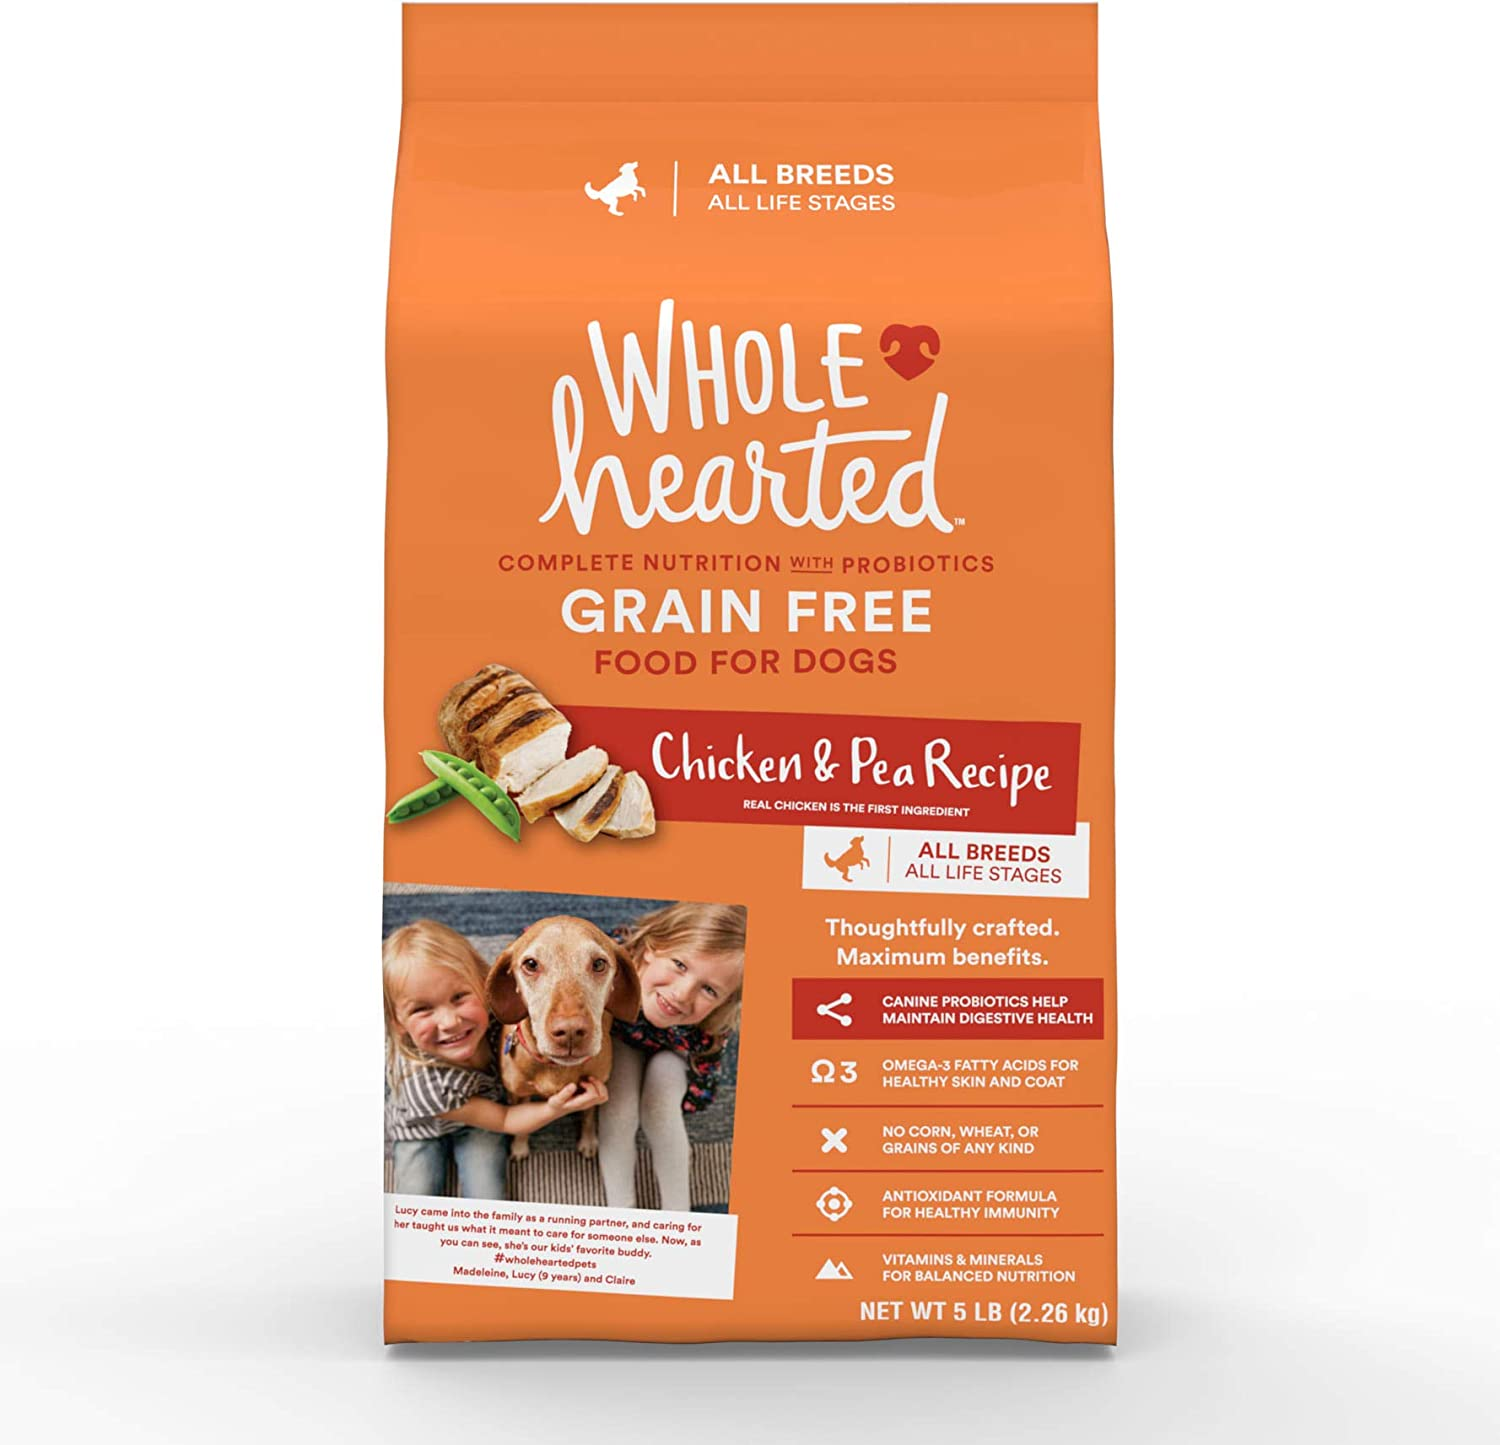 PETCO Brand - WholeHearted Grain Free All Life Stages Chicken & Pea Recipe Dry Dog Food, 5 lbs.